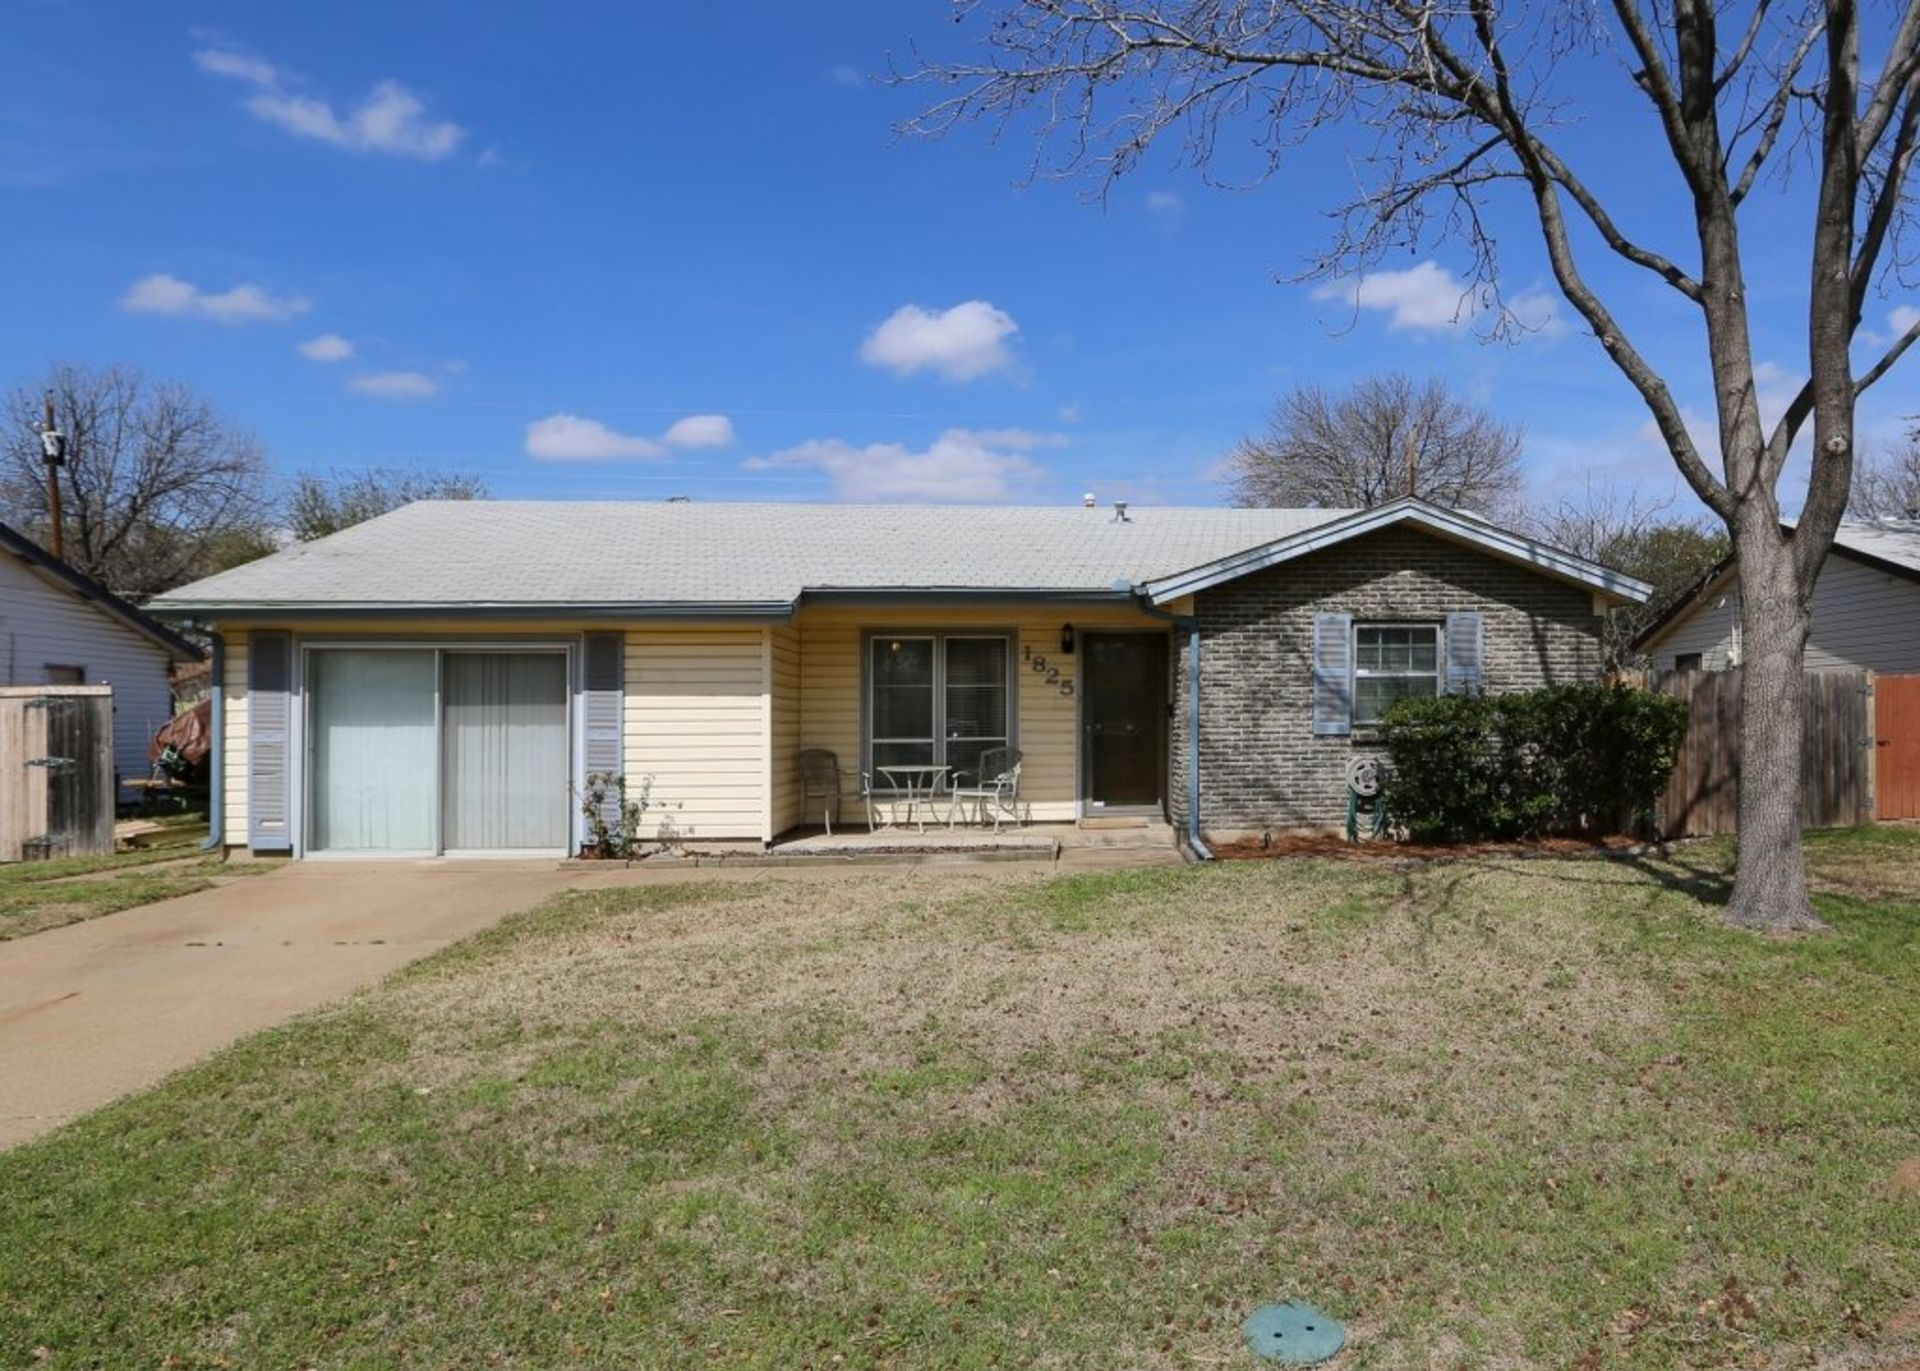 FOUR BEDROOM IRVING HOME FOR SALE $175K